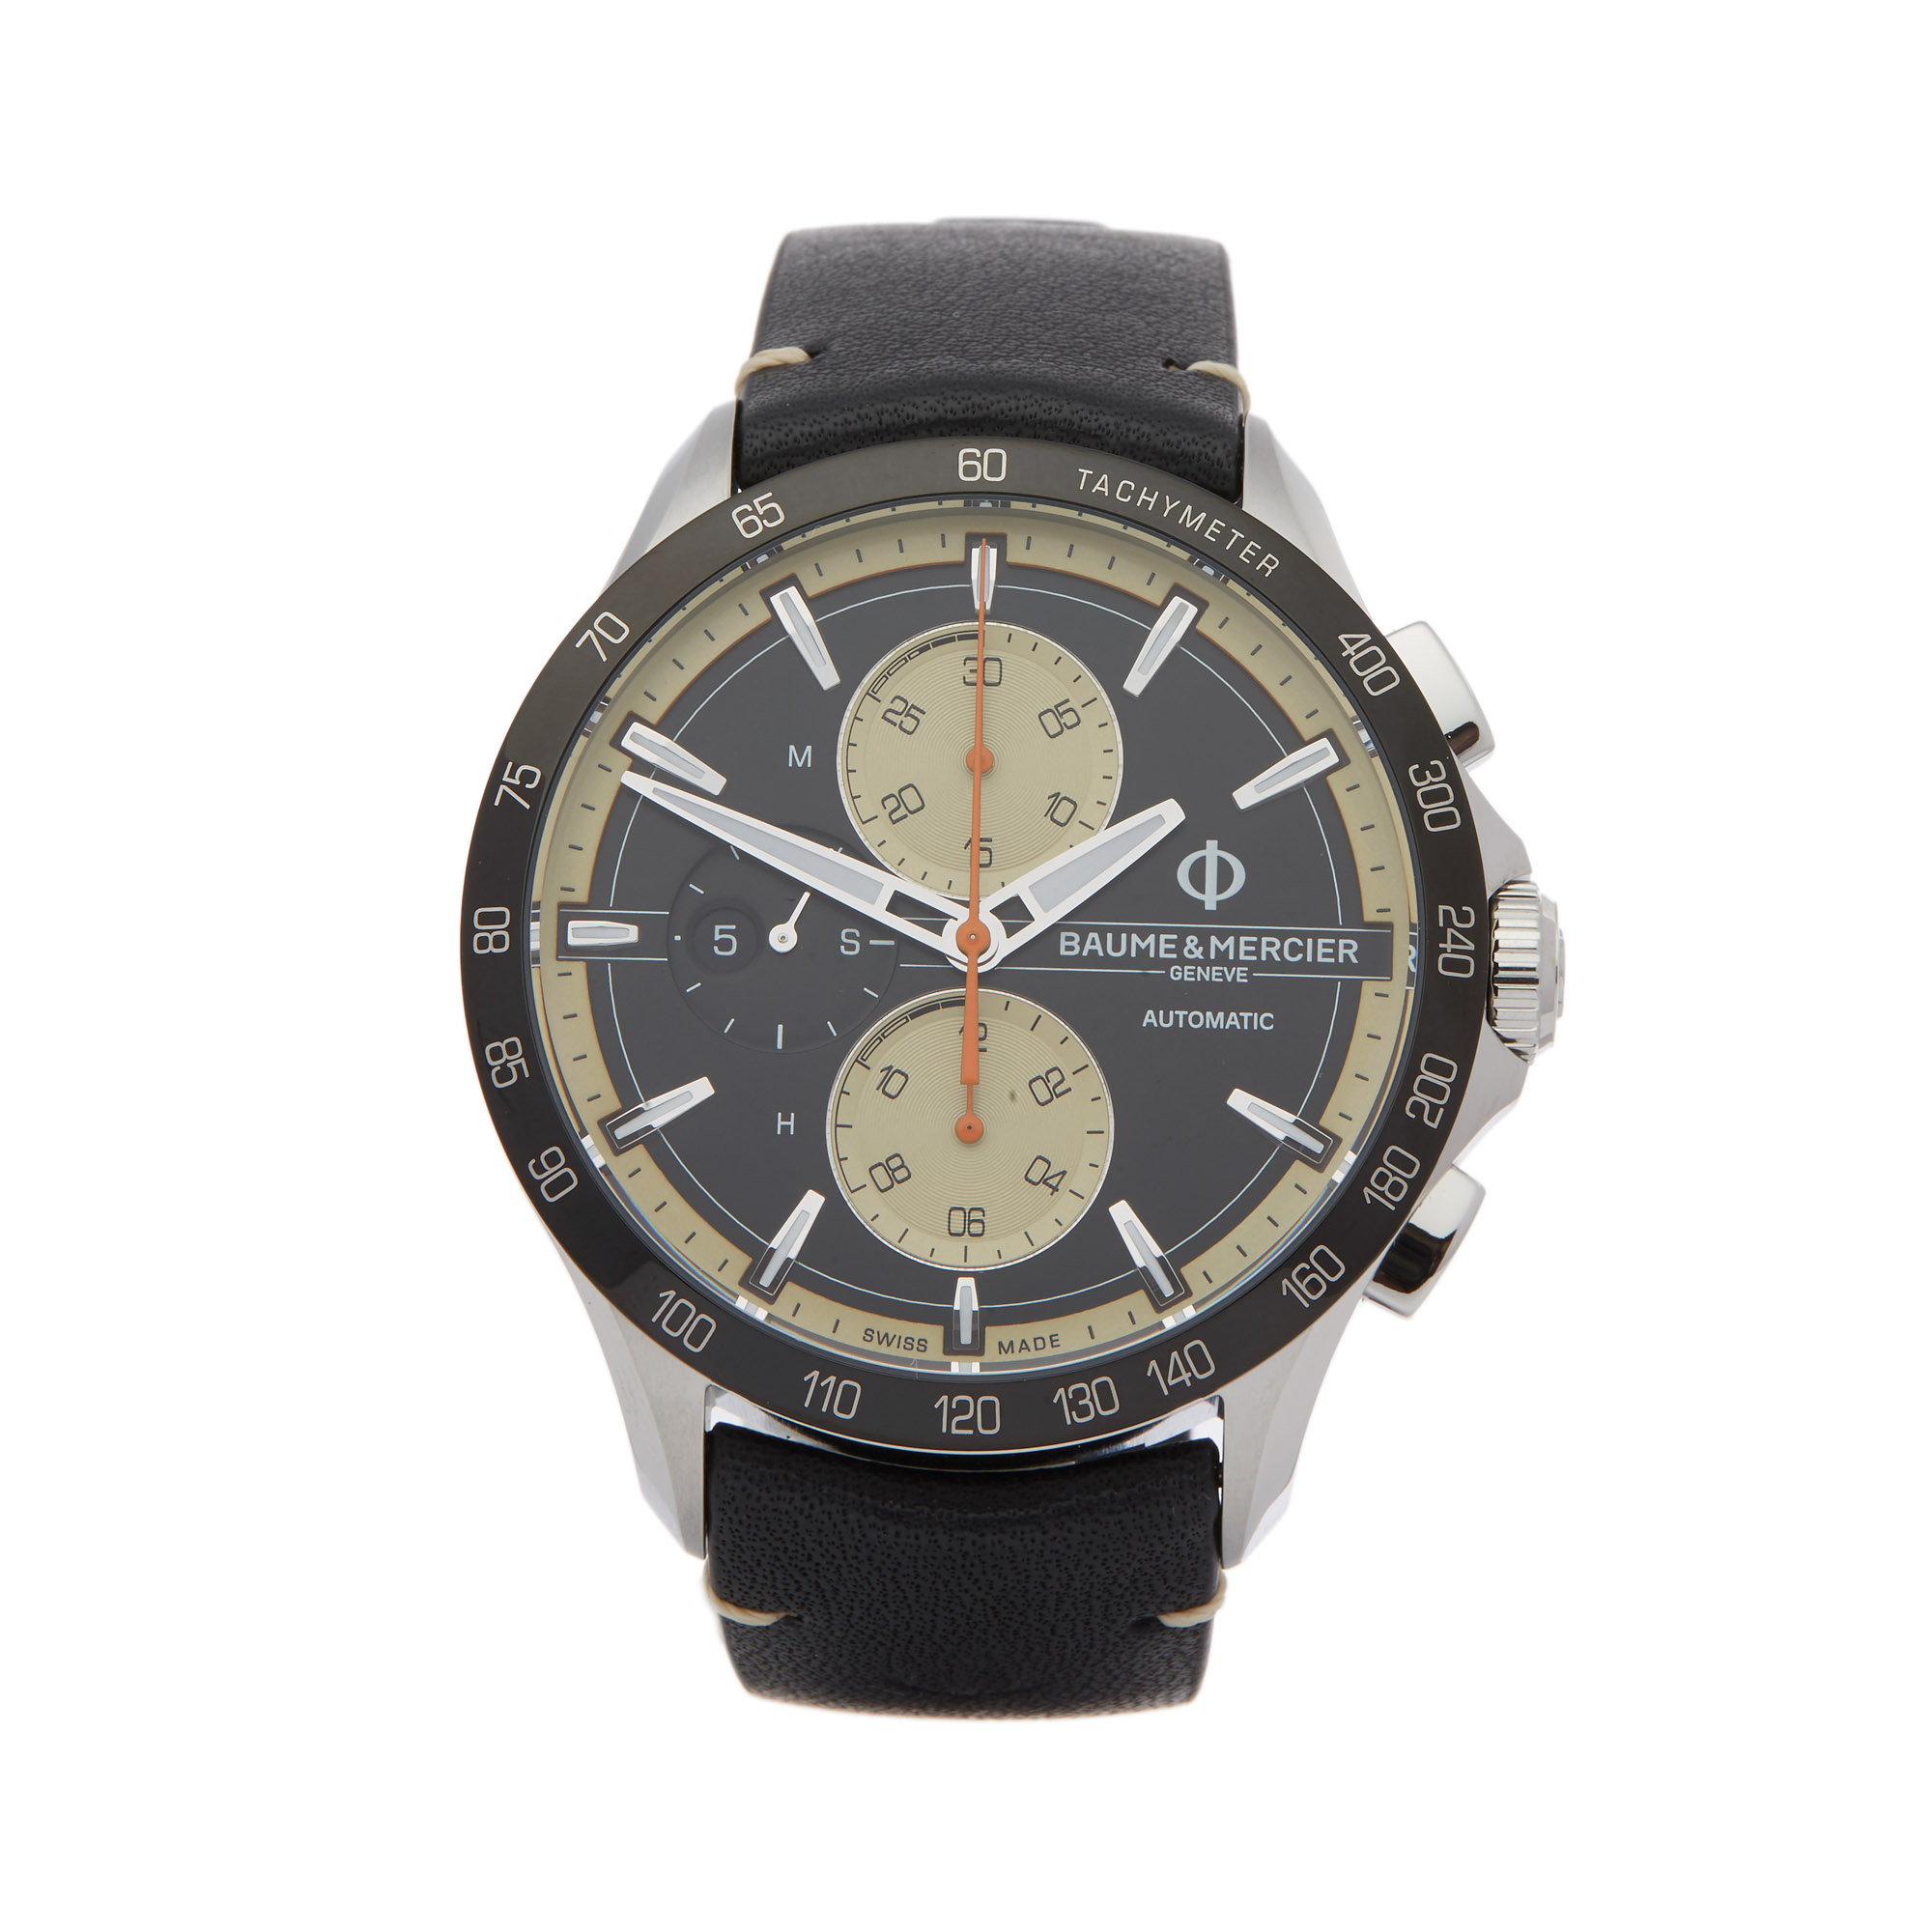 Baume & Mercier Clifton Club M0A10434 Men Stainless Steel Chronograph Watch - Image 9 of 9